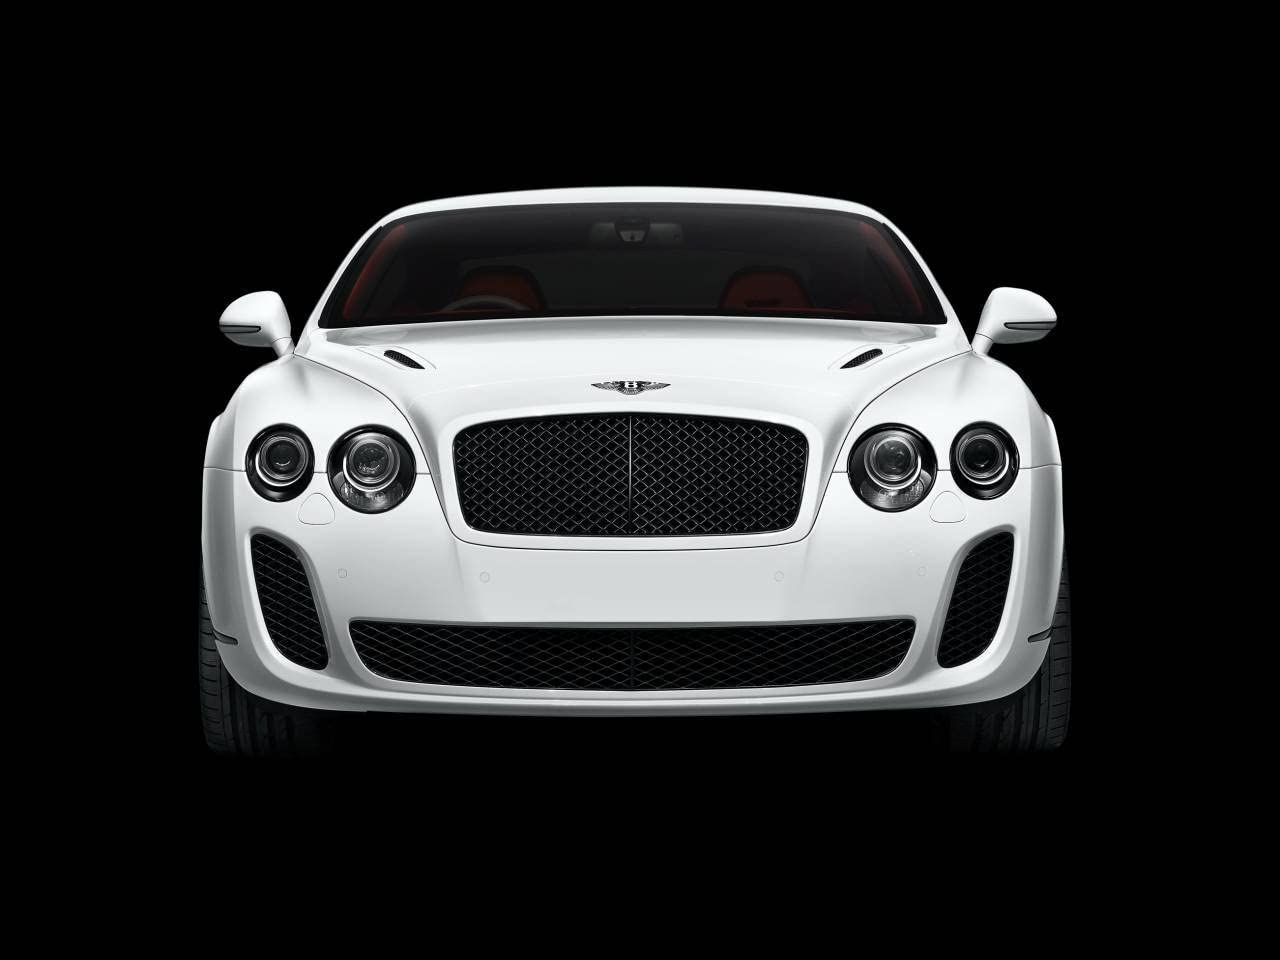 2010 Bentley Continental Supersport CARS6311 Art Poster Print A4 A3 A2 A1